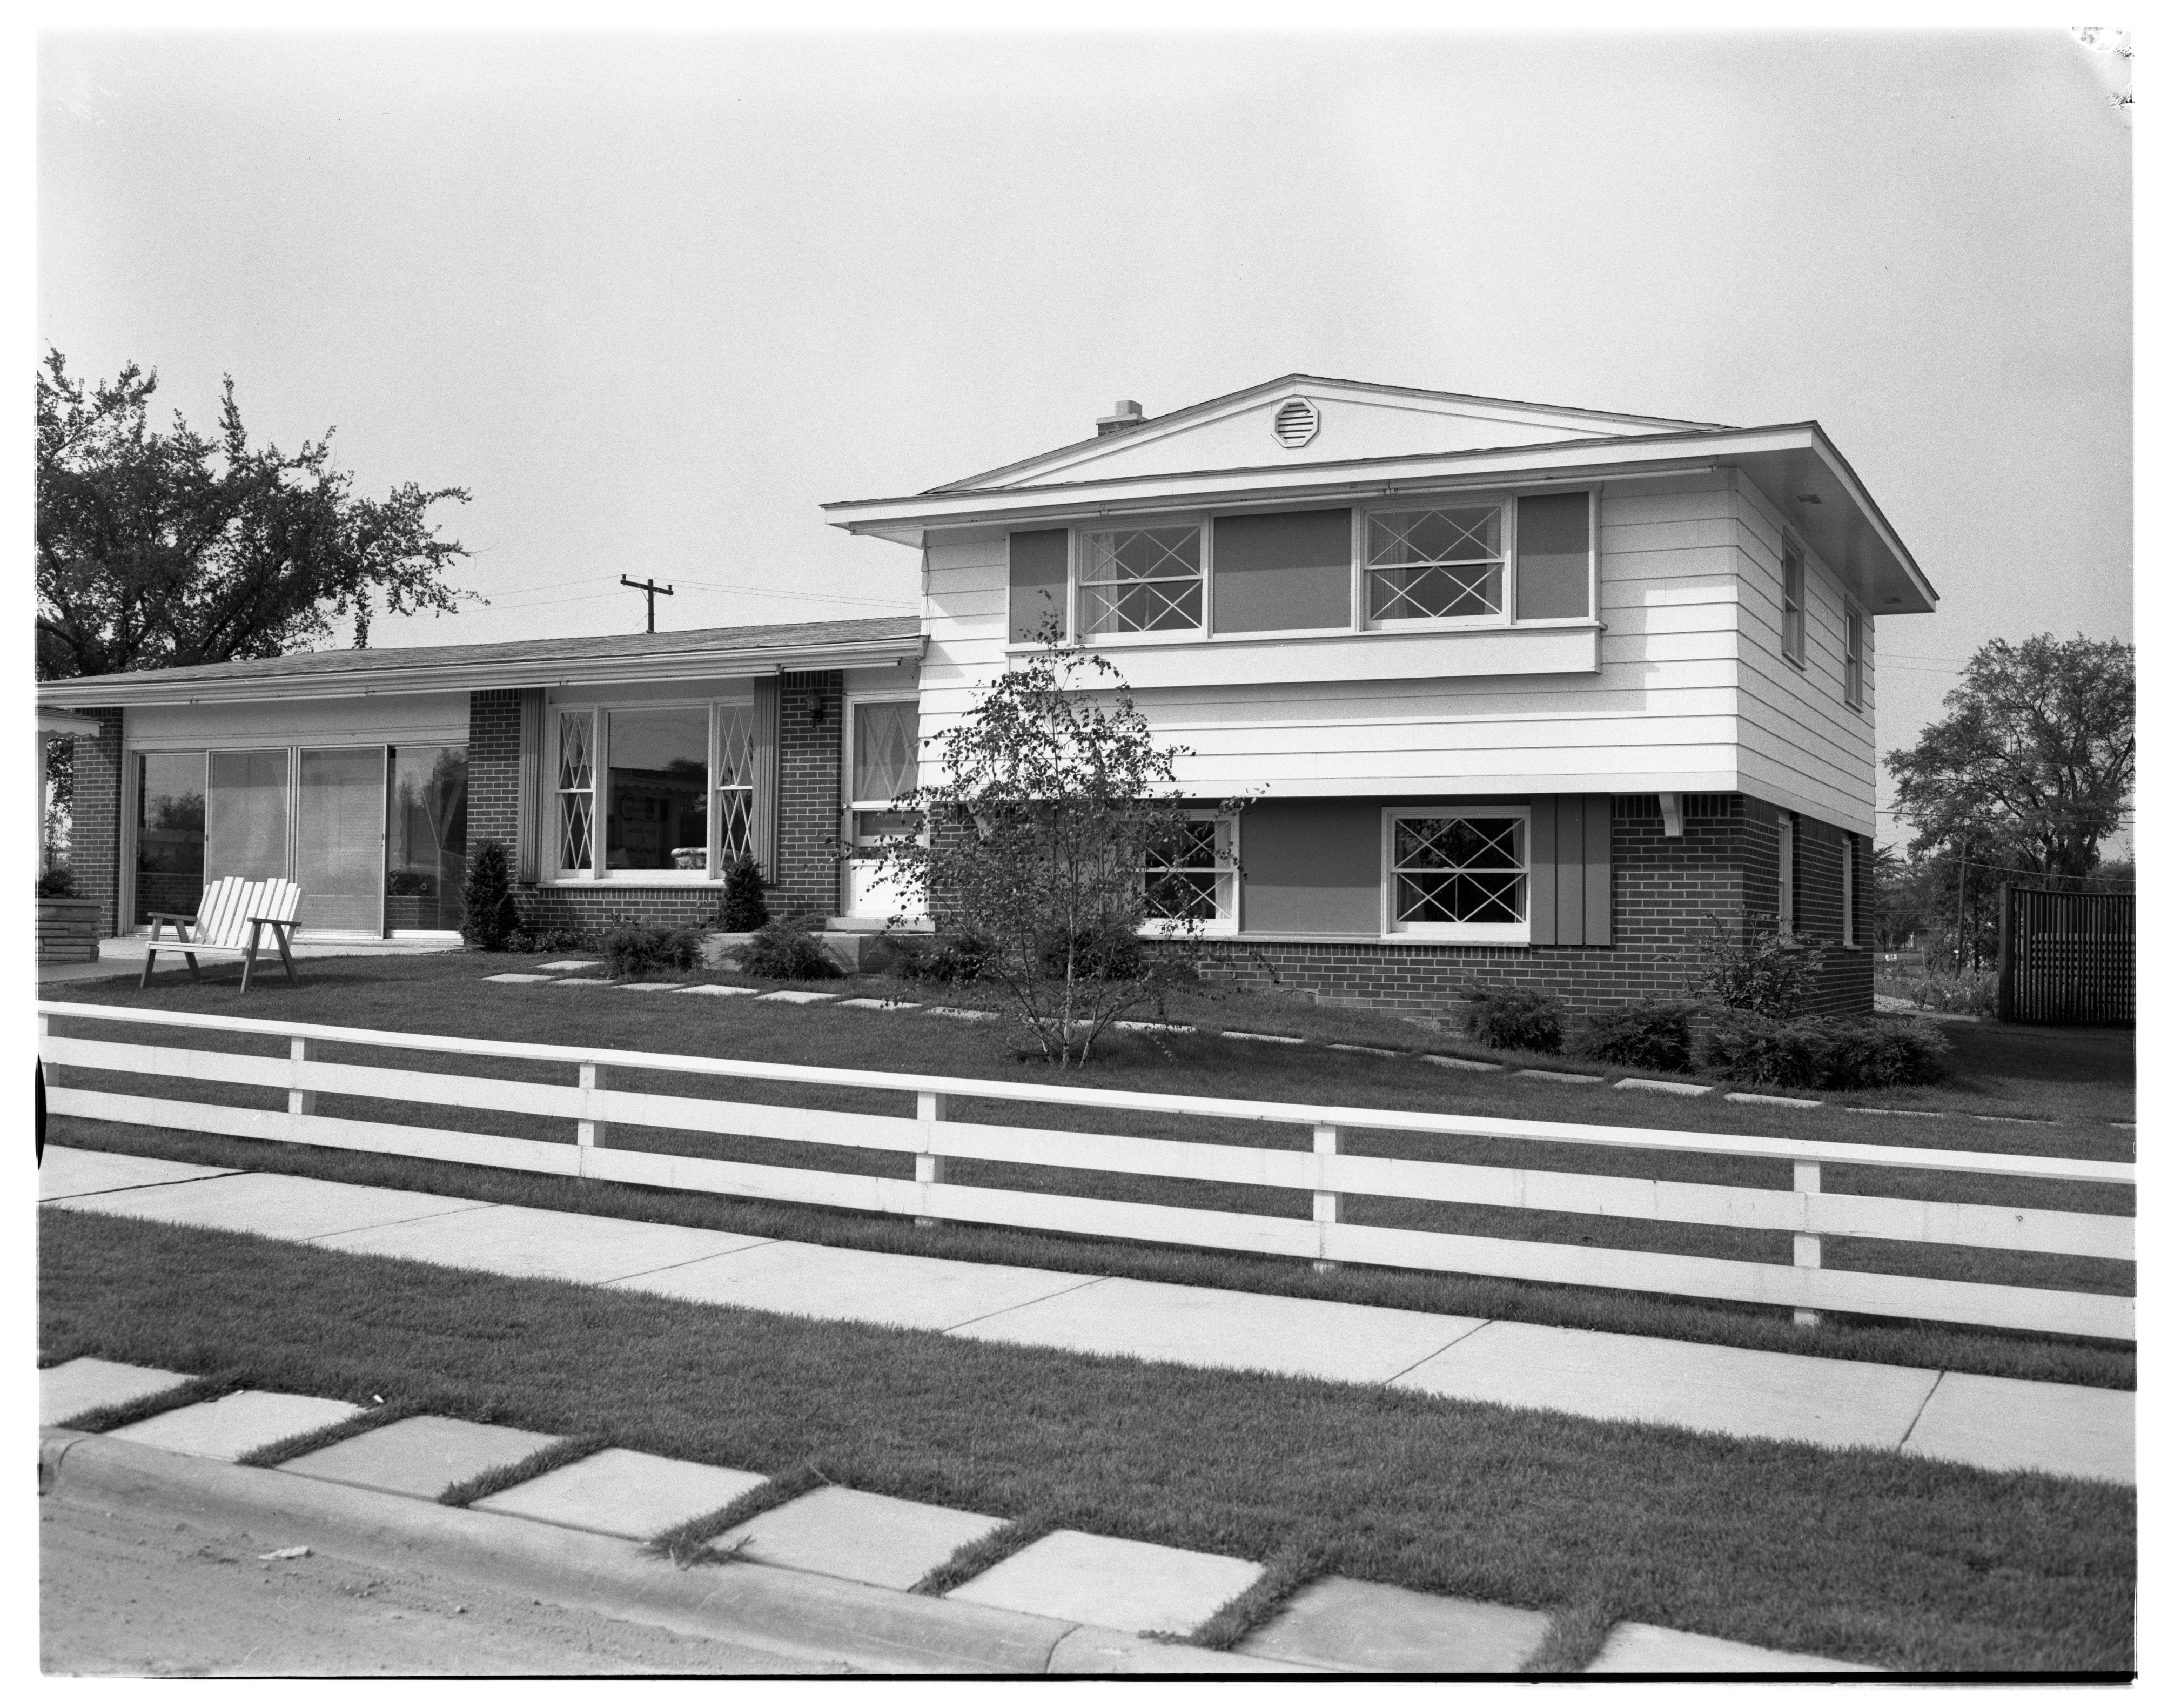 """The Knollwood"" Model Home in Forestbrooke Subdivision, September 1960 image"